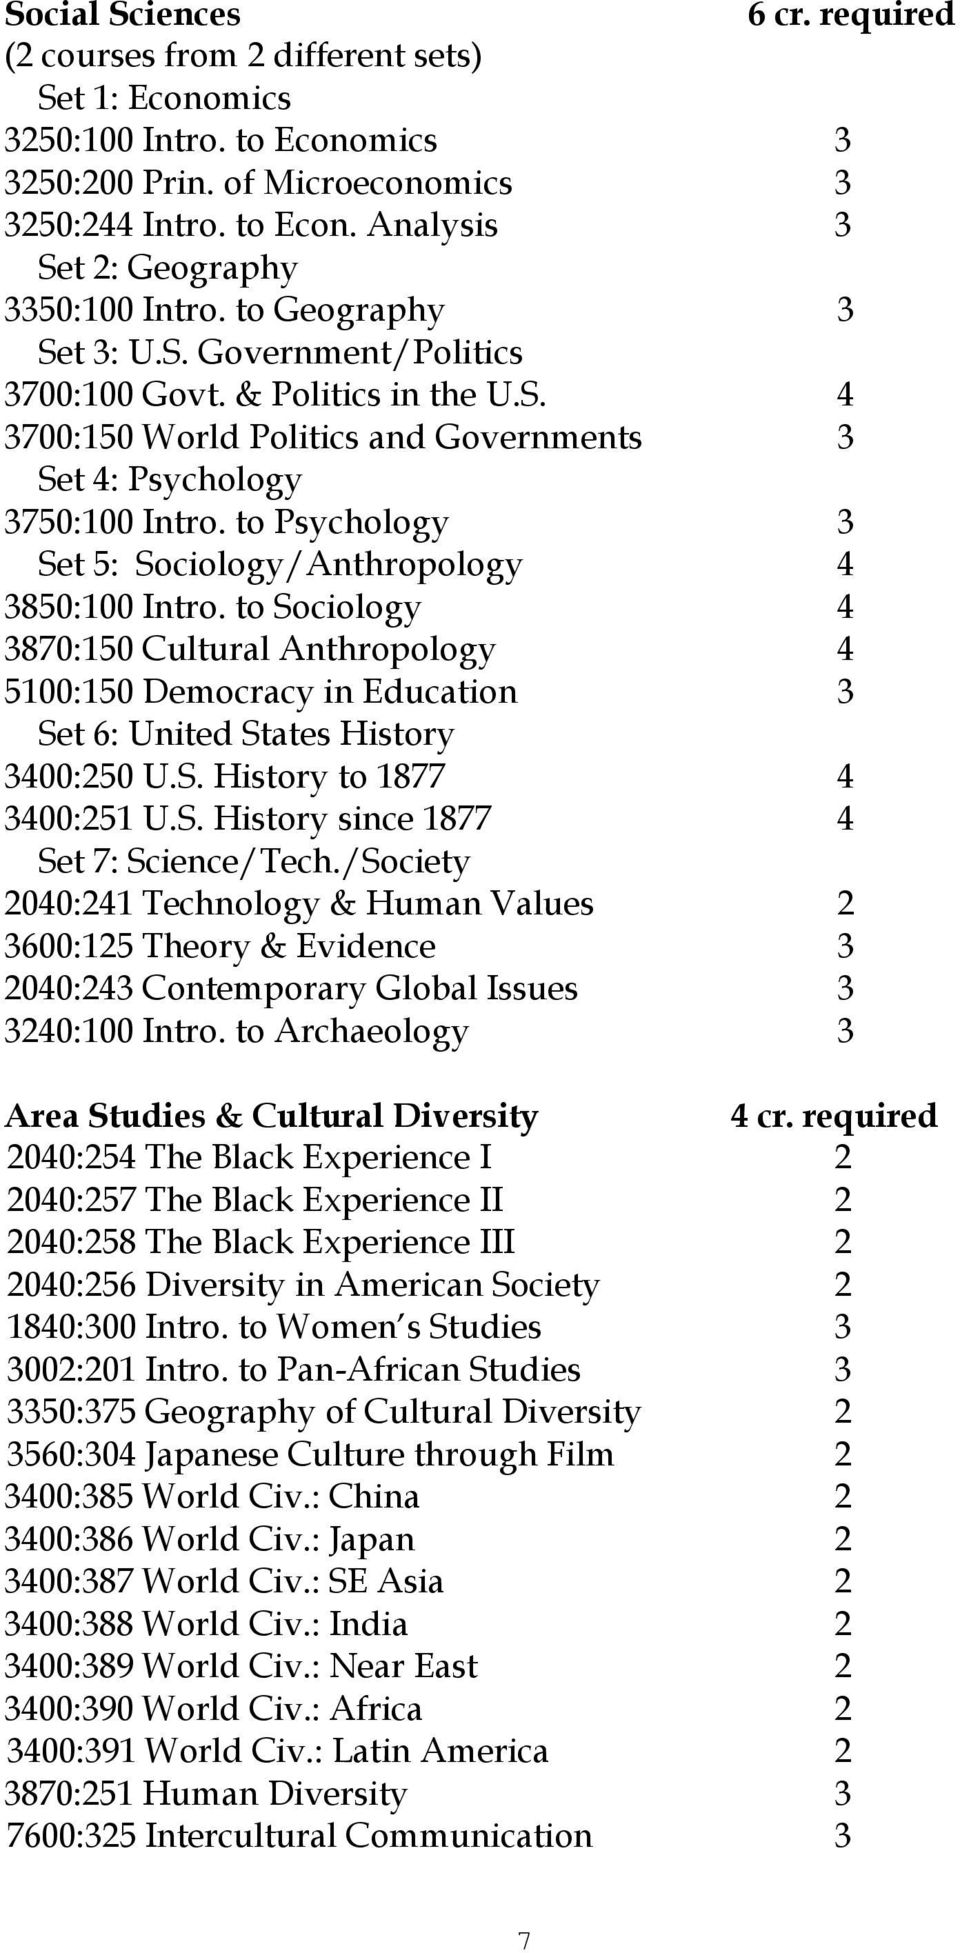 to Psychology 3 Set 5: Sociology/Anthropology 4 3850:100 Intro. to Sociology 4 3870:150 Cultural Anthropology 4 5100:150 Democracy in Education 3 Set 6: United States History 3400:250 U.S. History to 1877 4 3400:251 U.